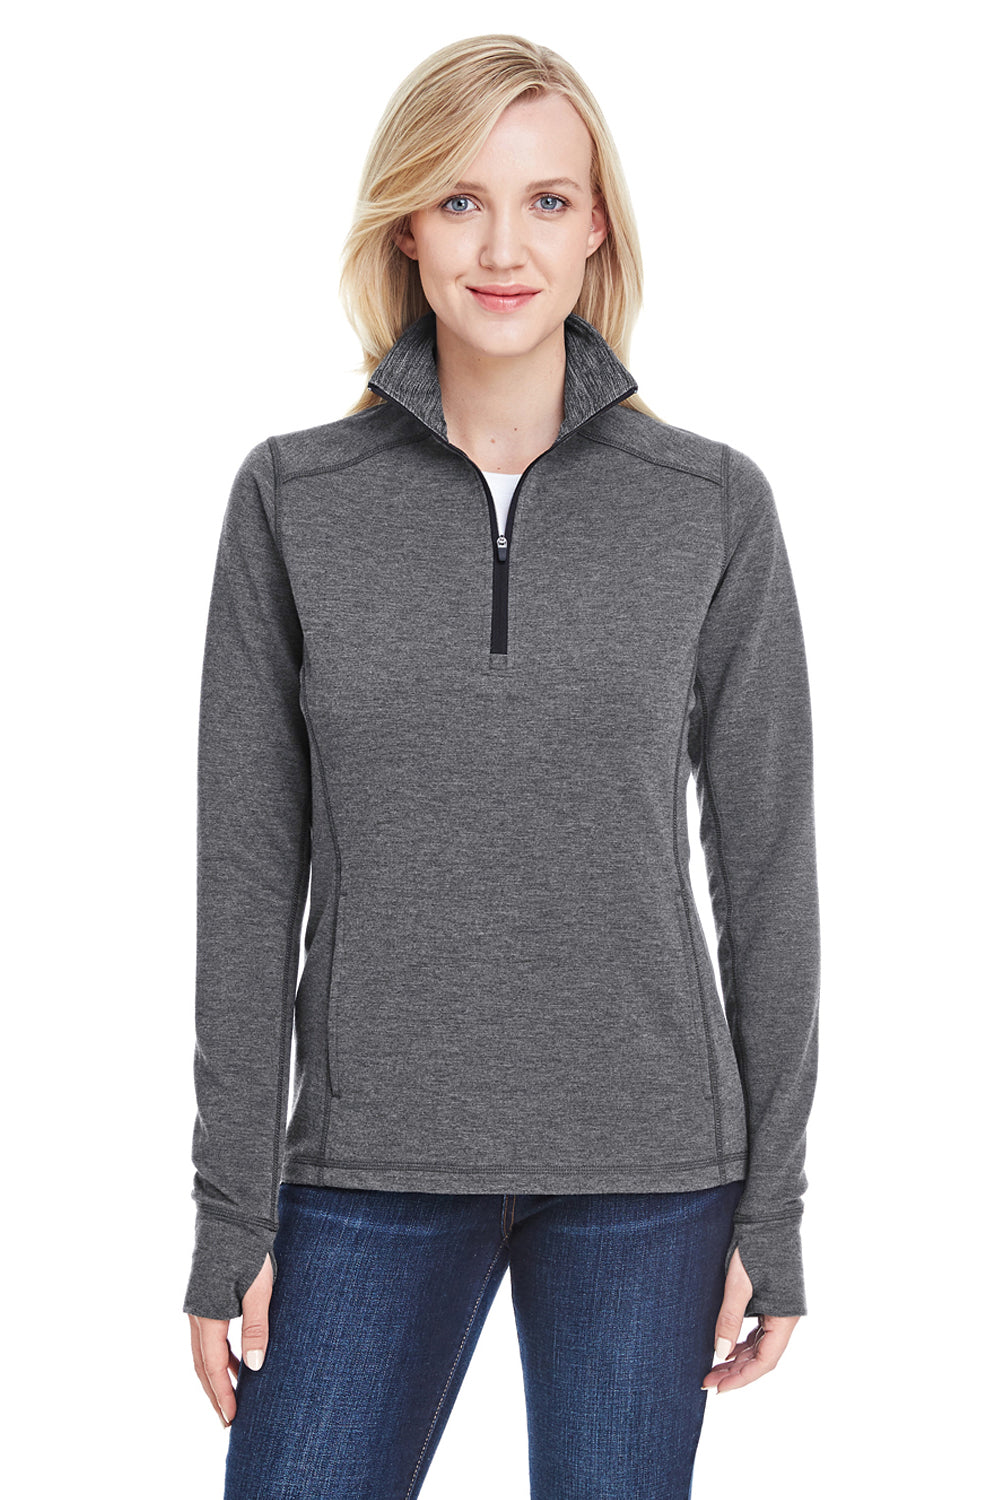 J America JA8433 Womens Omega Sueded Terry 1/4 Zip Sweatshirt Charcoal Grey Front